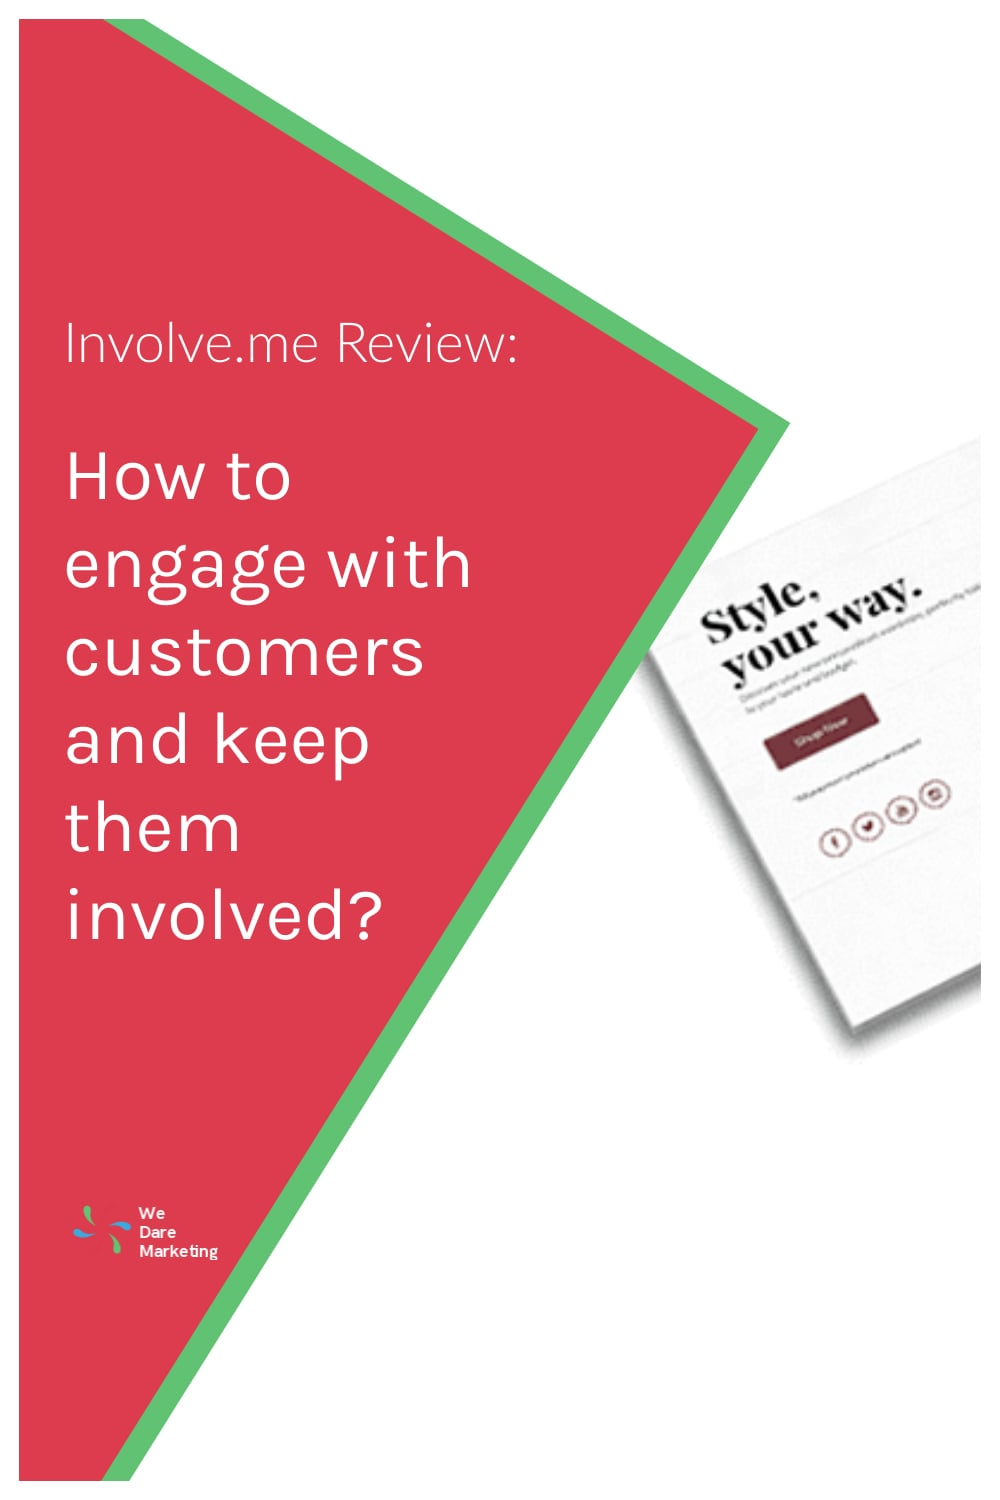 Involve.me is a great tool for Pinterest too